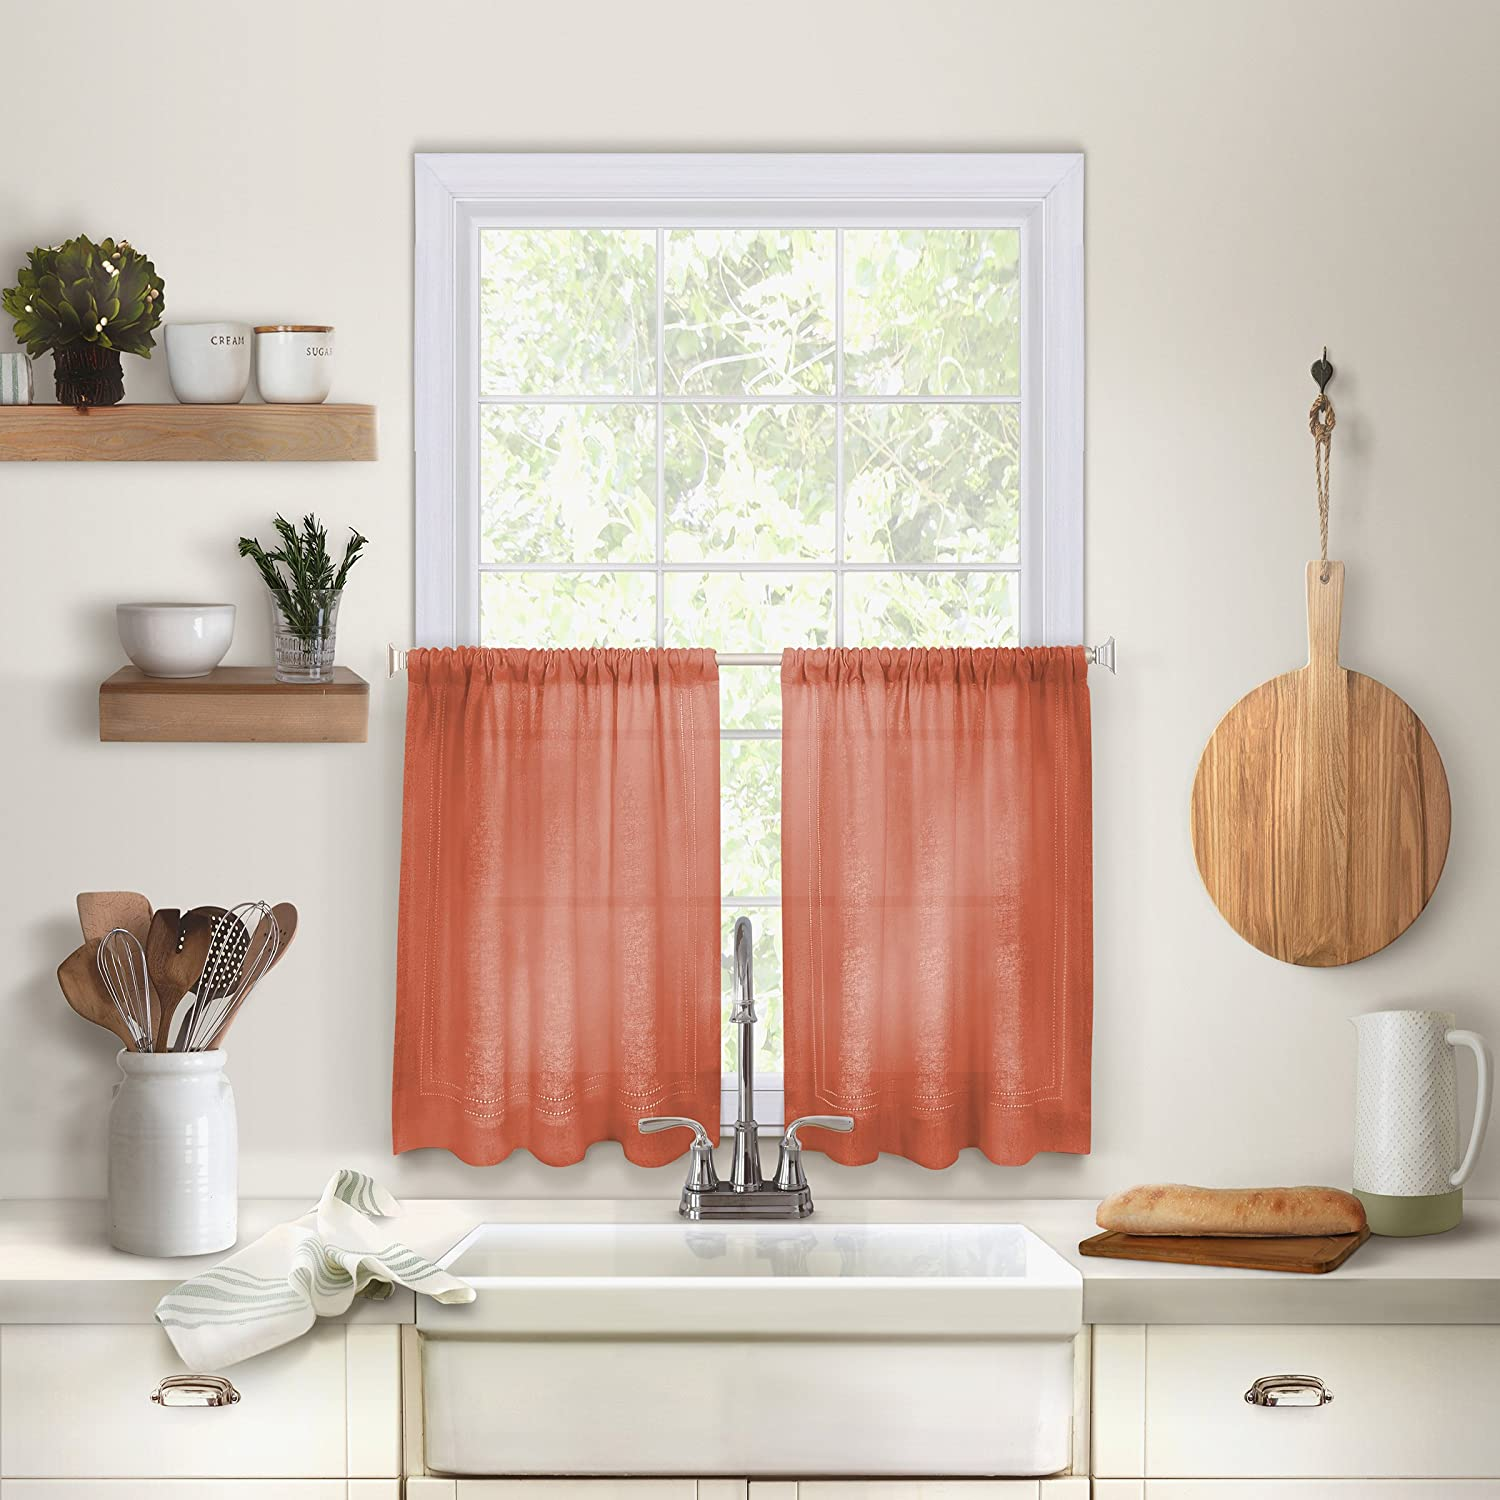 Elrene Home Fashions 026865885286 Cameron Kitchen Tier Window Curtain, Set of 2, 30